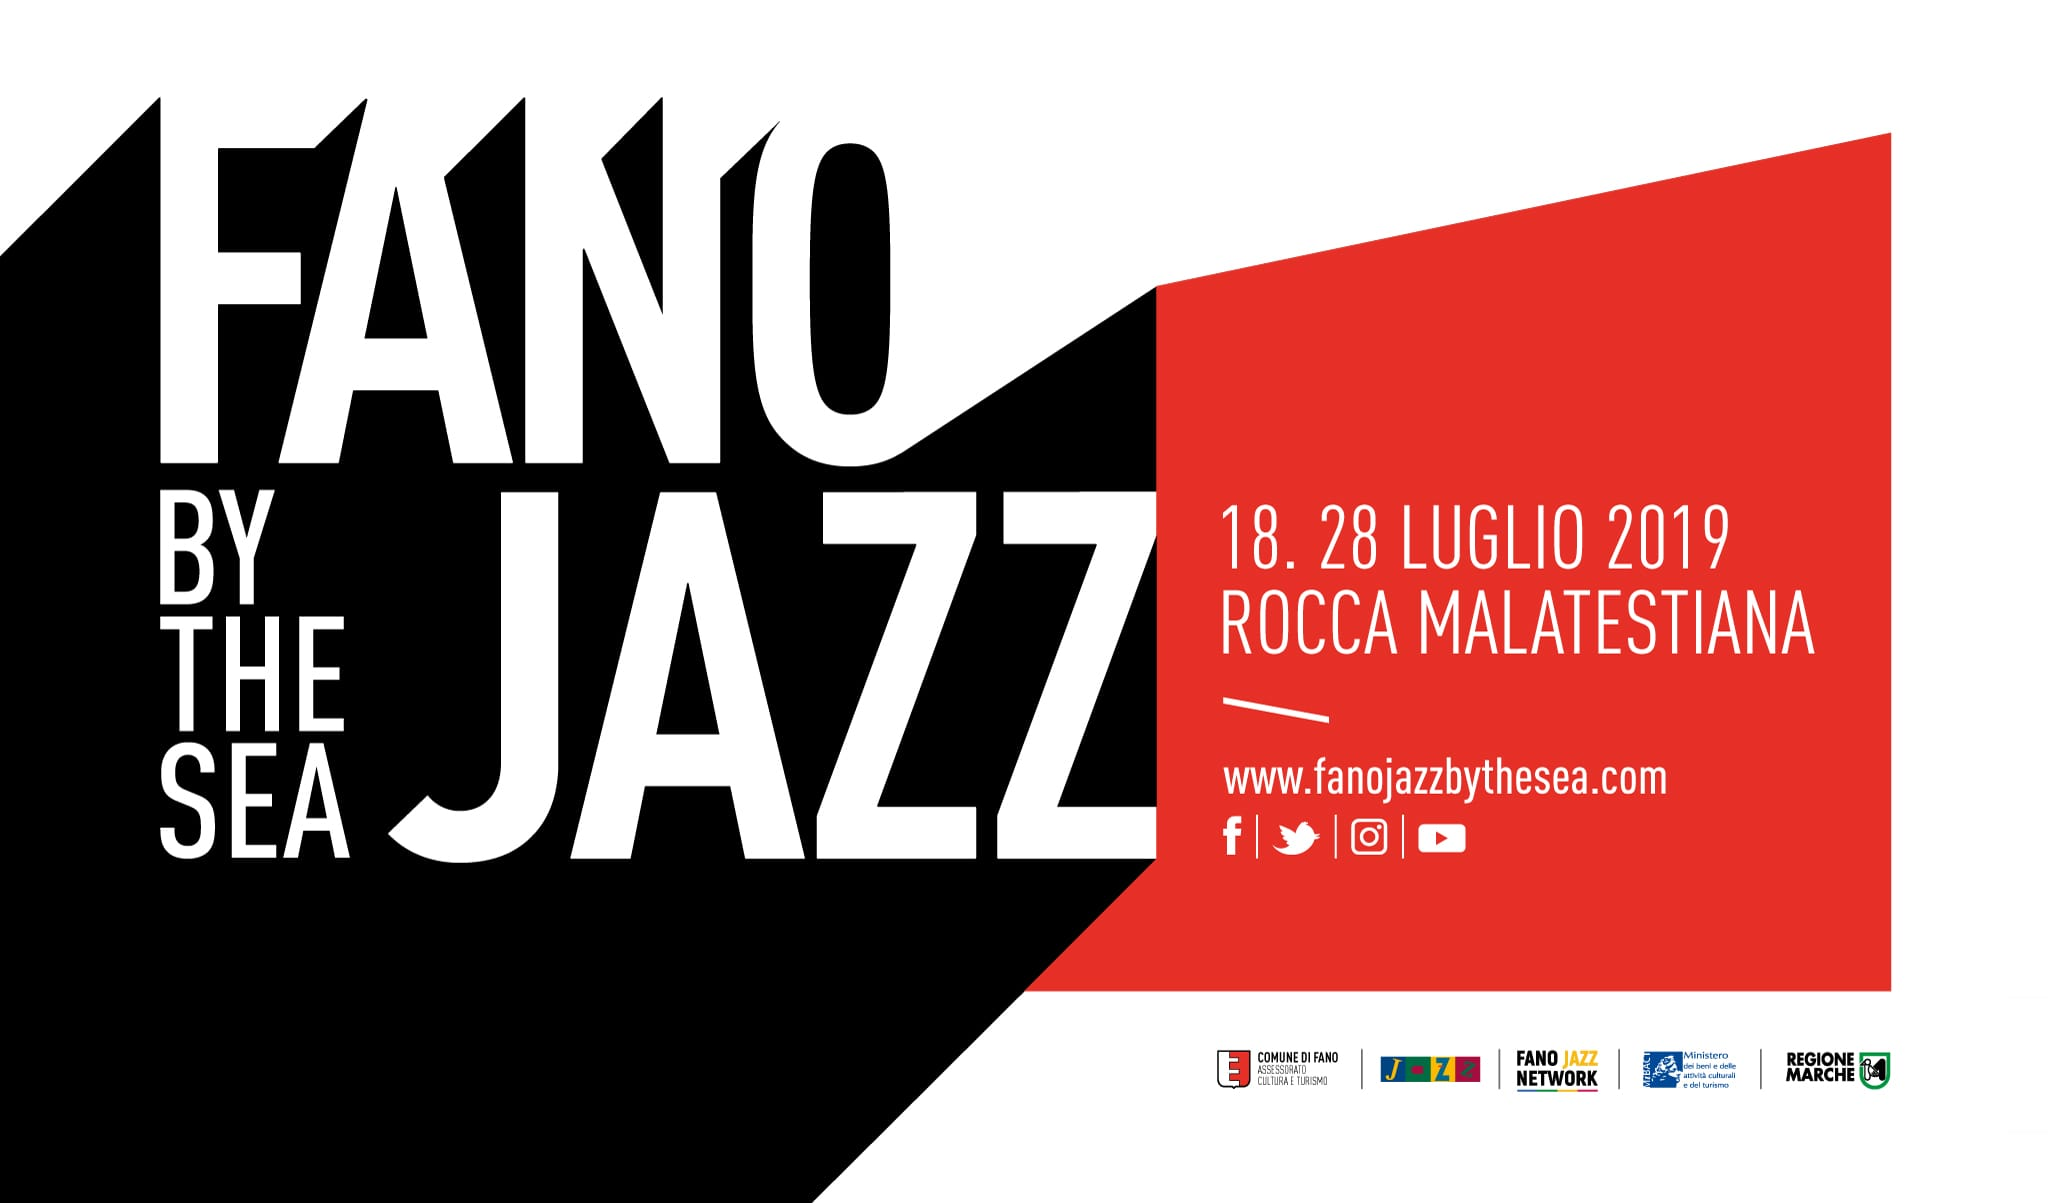 Fano Jazz festival by the Sea 2019